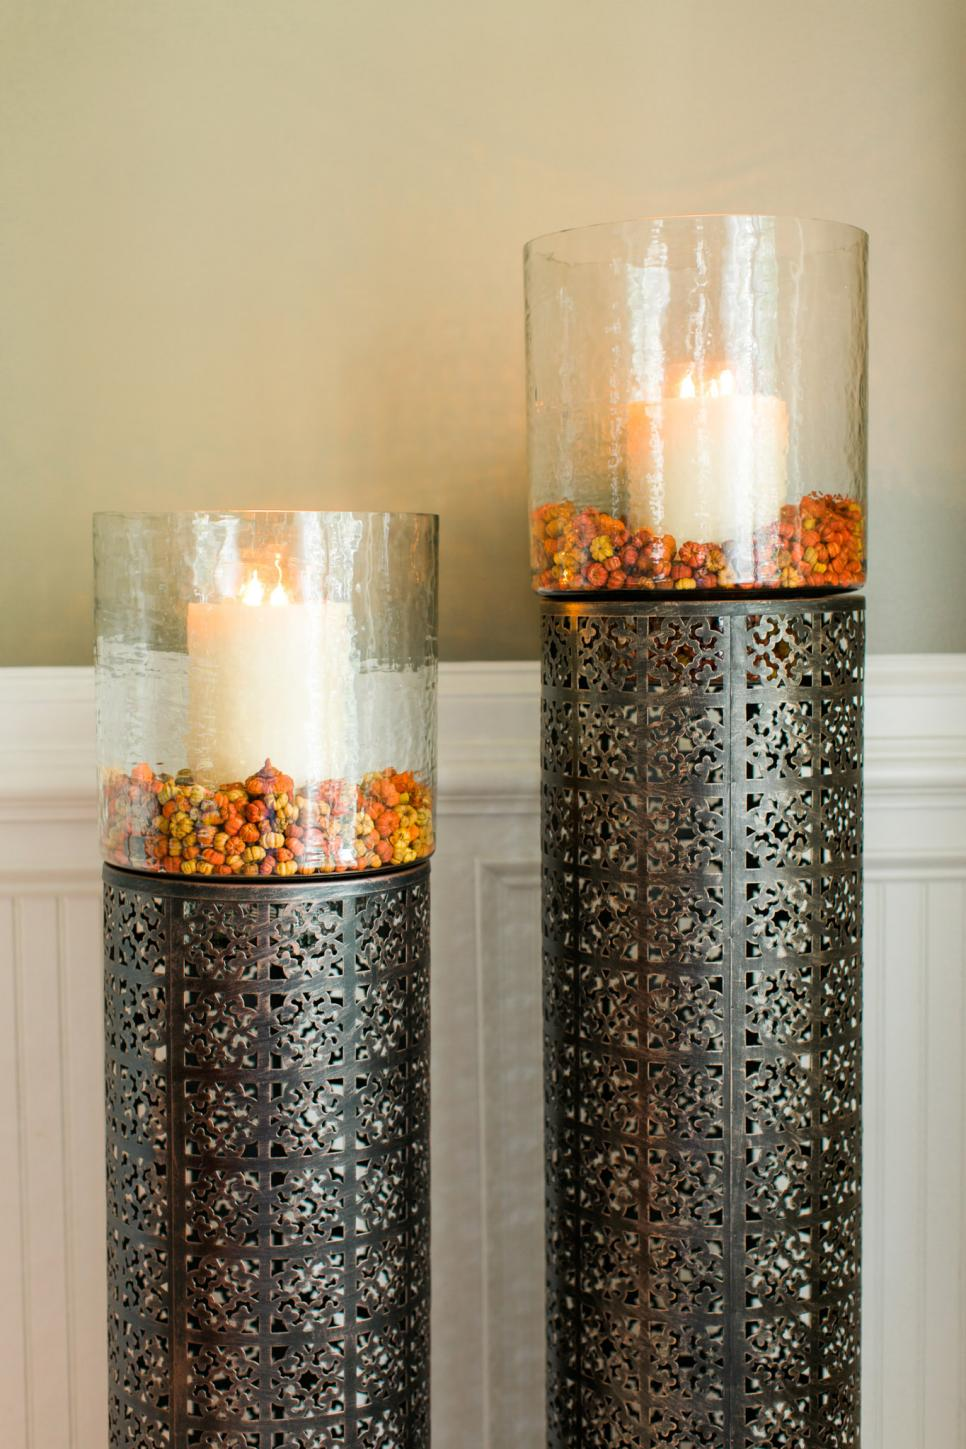 Candles for cozy interior